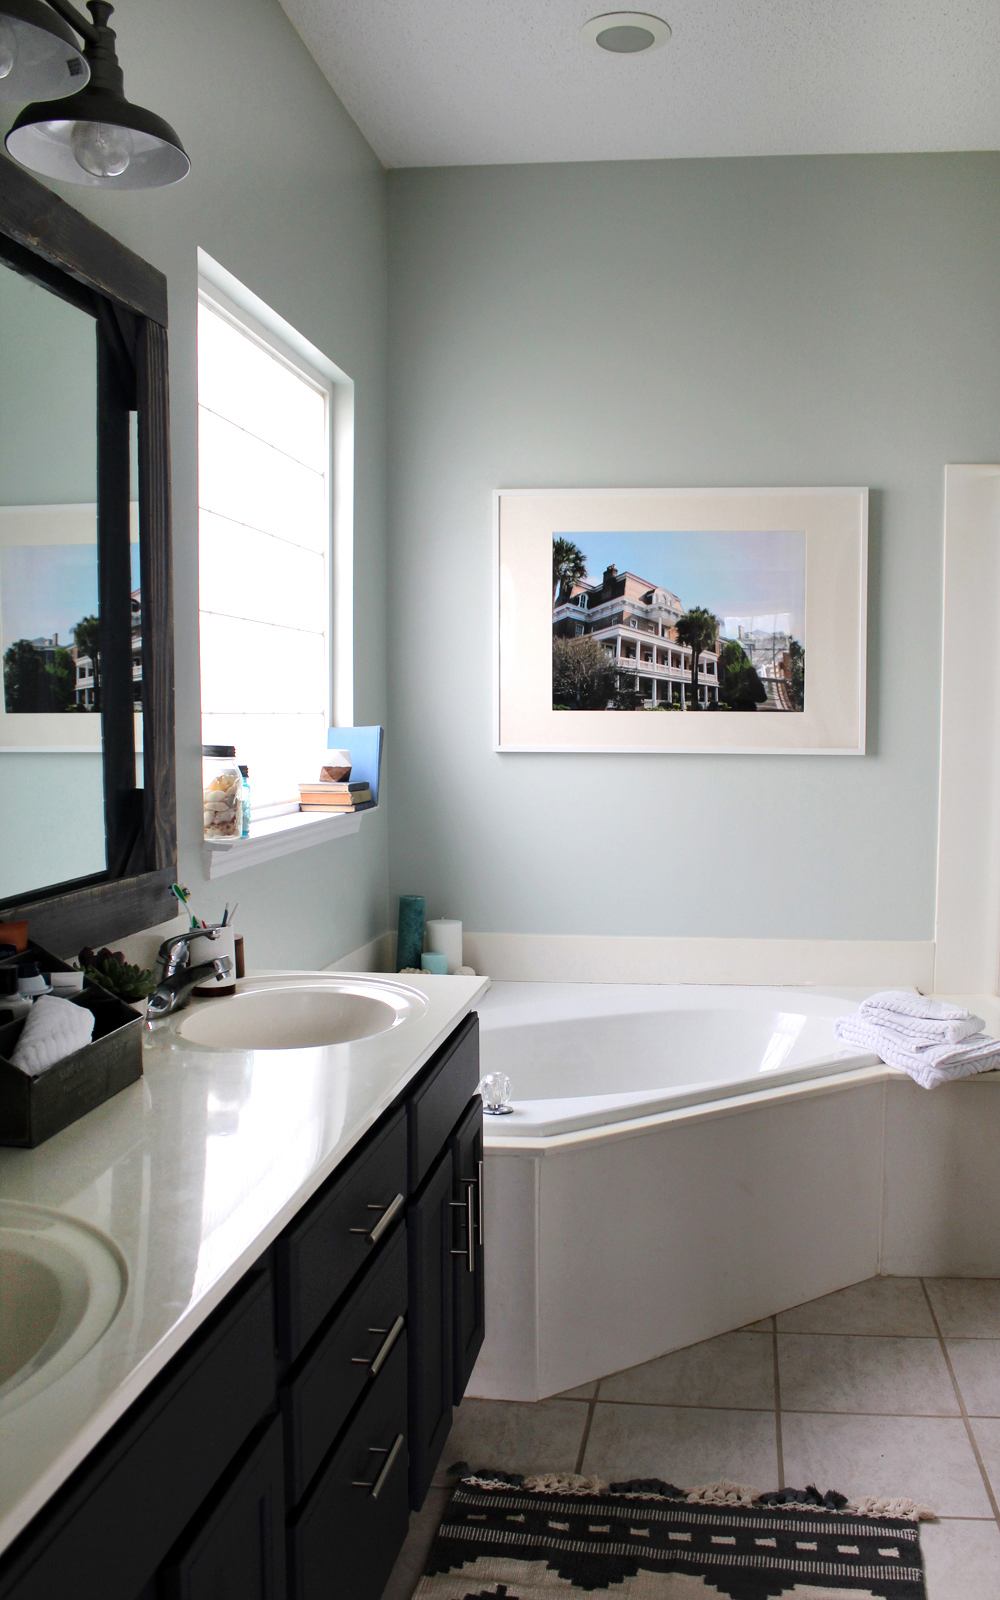 How To Update Your Master Bathroom For $300